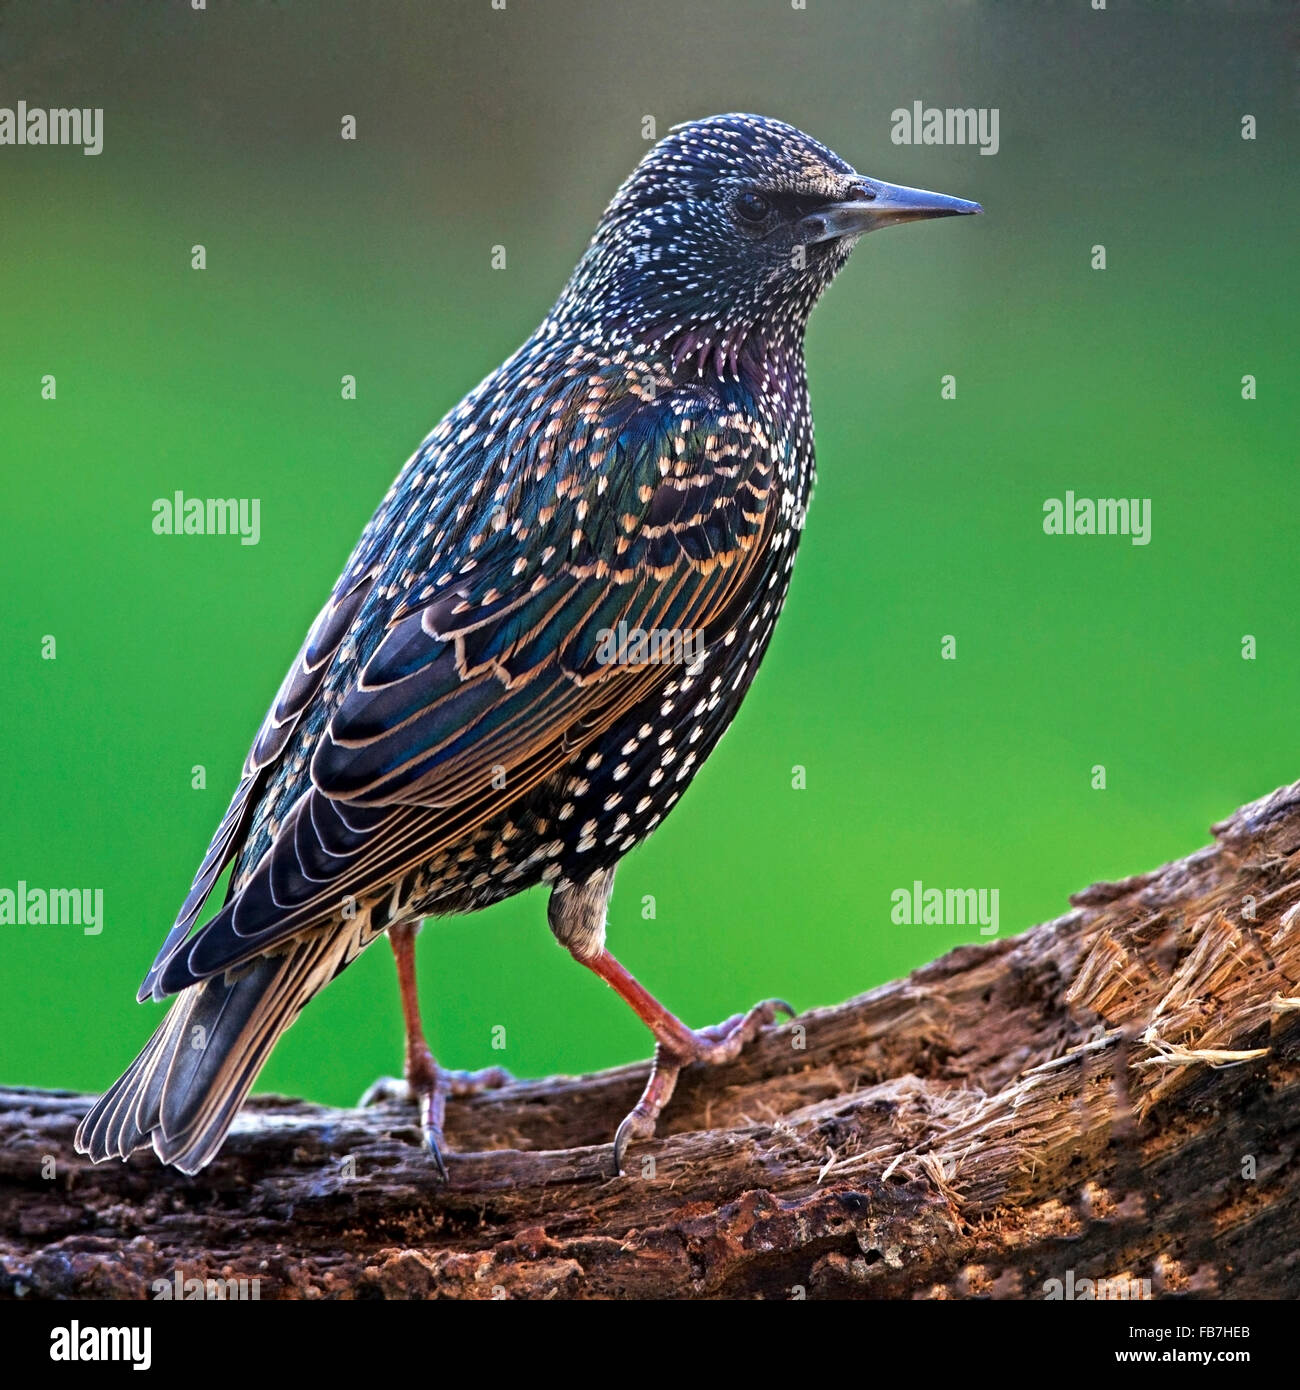 Common starling perched on branch Stock Photo